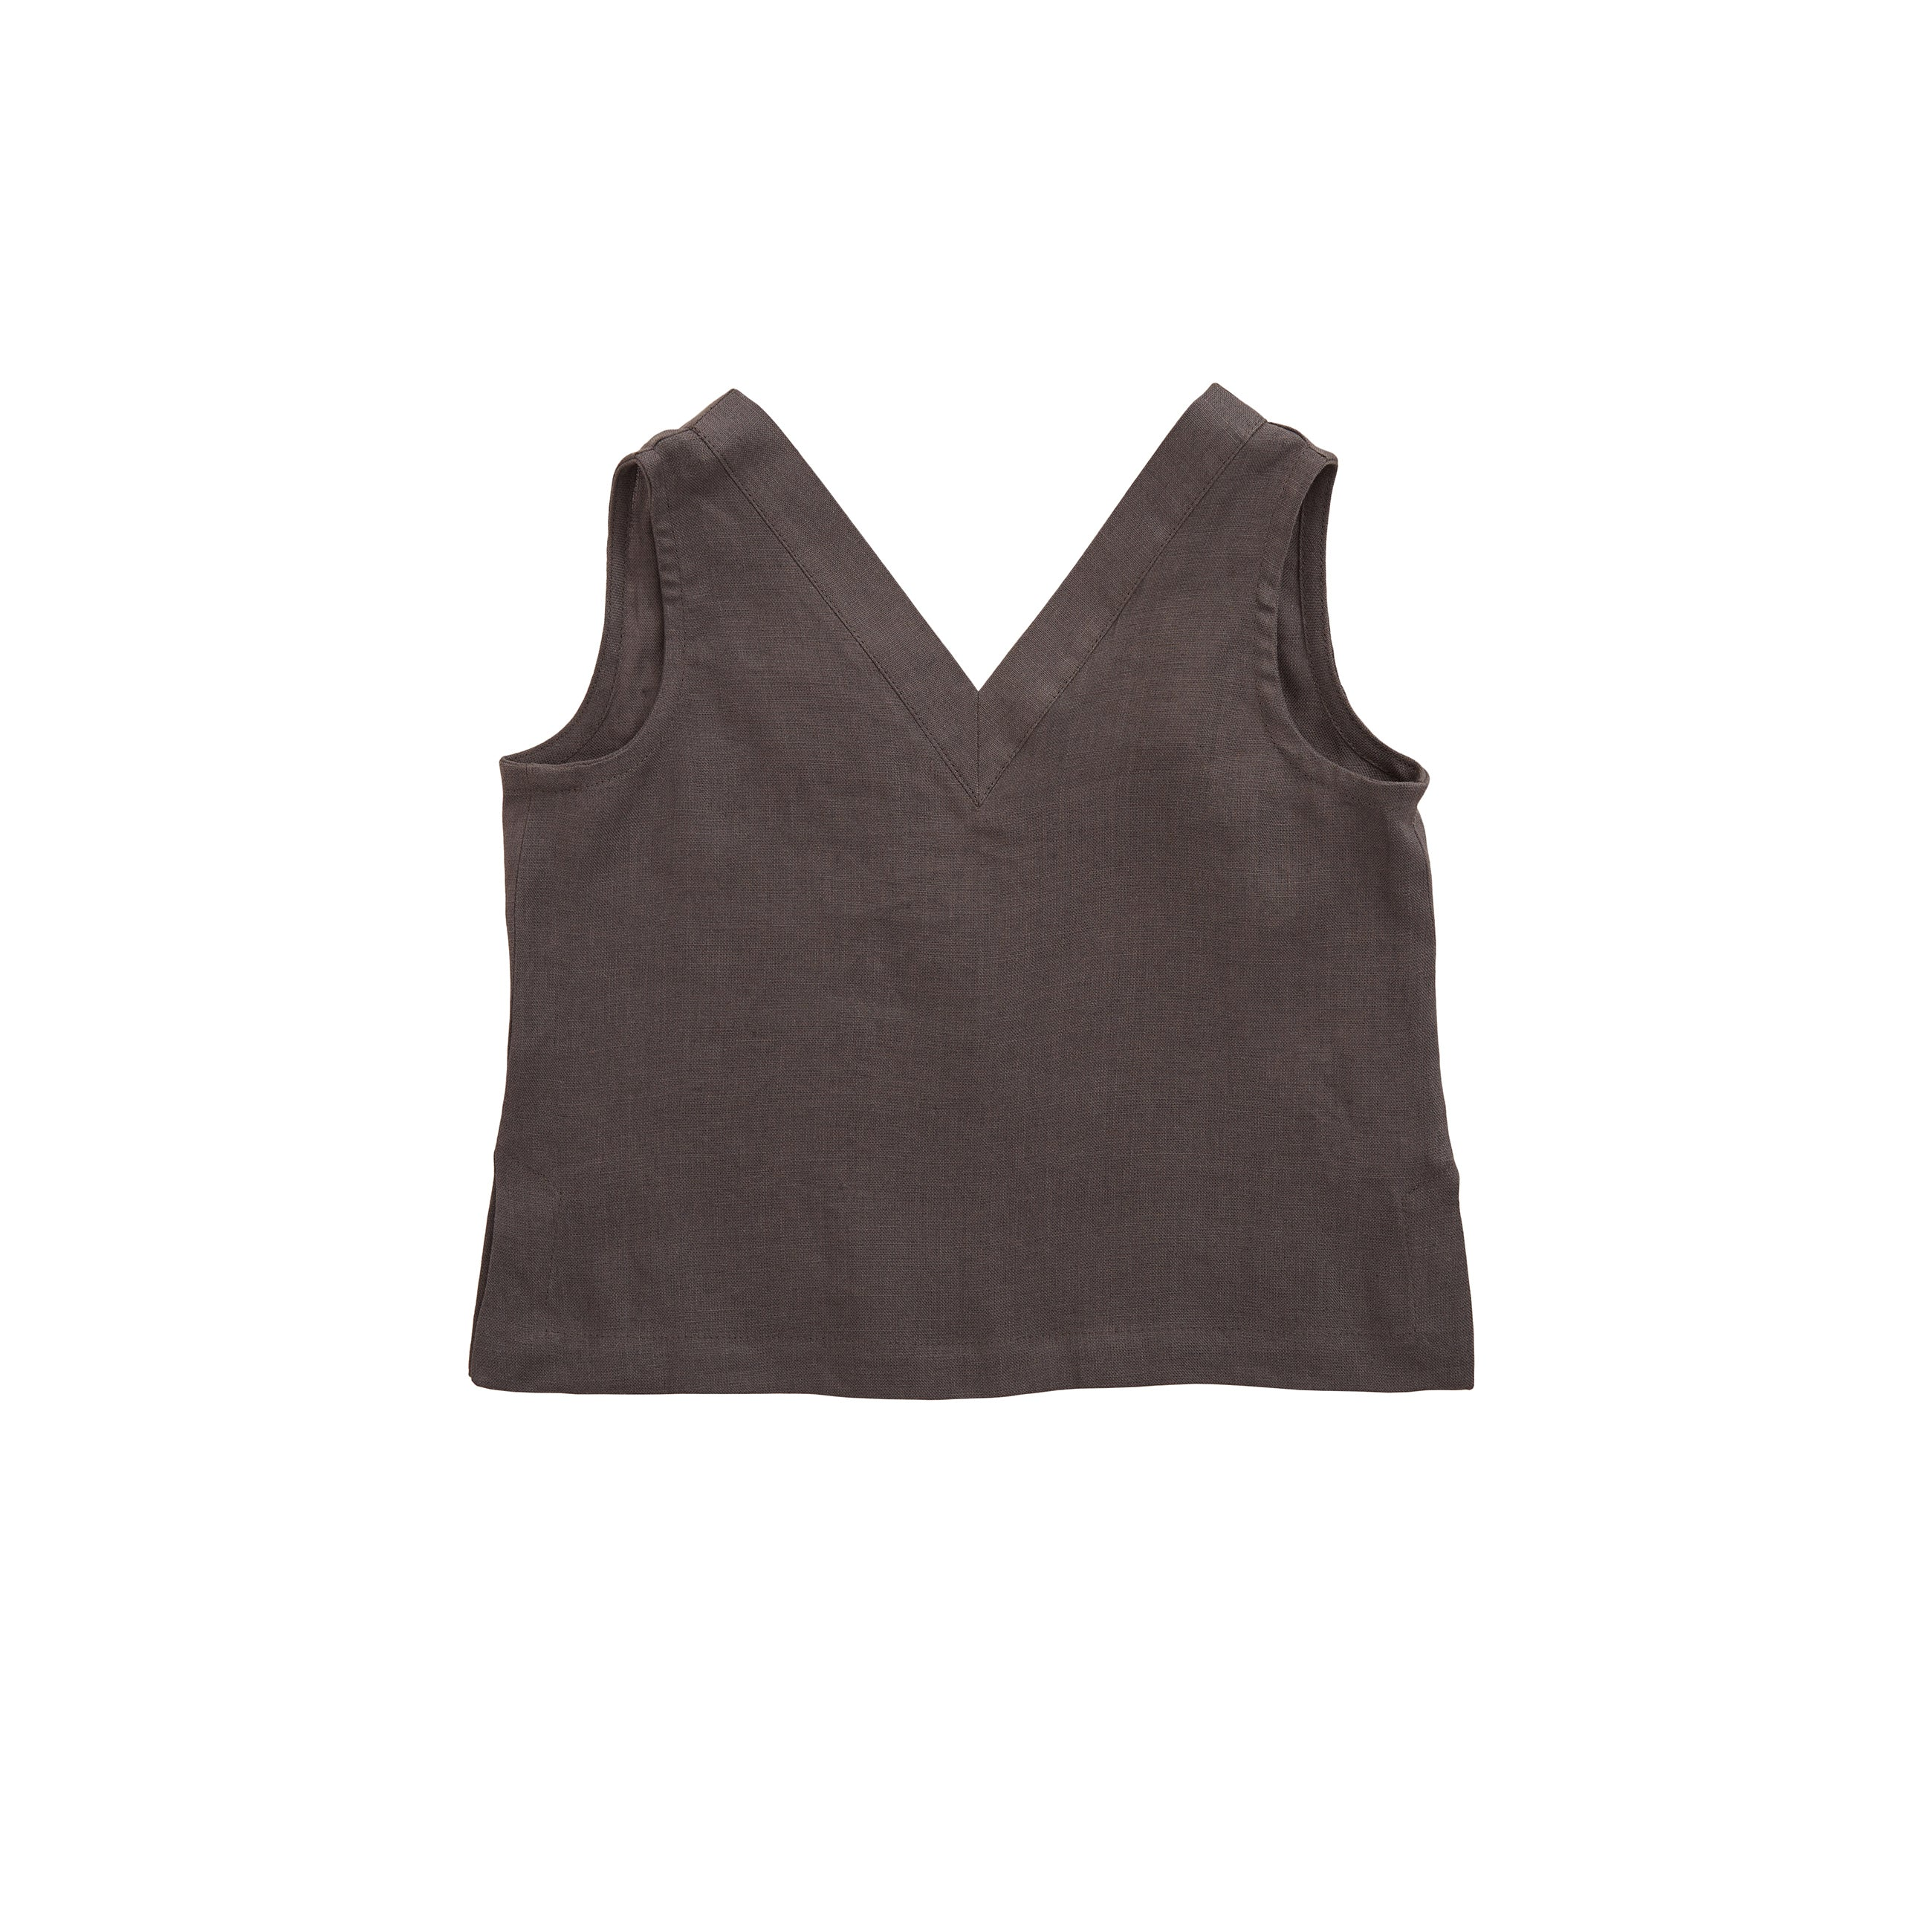 Nobonu Emma Linen Sleeveless Girl's Top in Dark Grey | BIEN BIEN